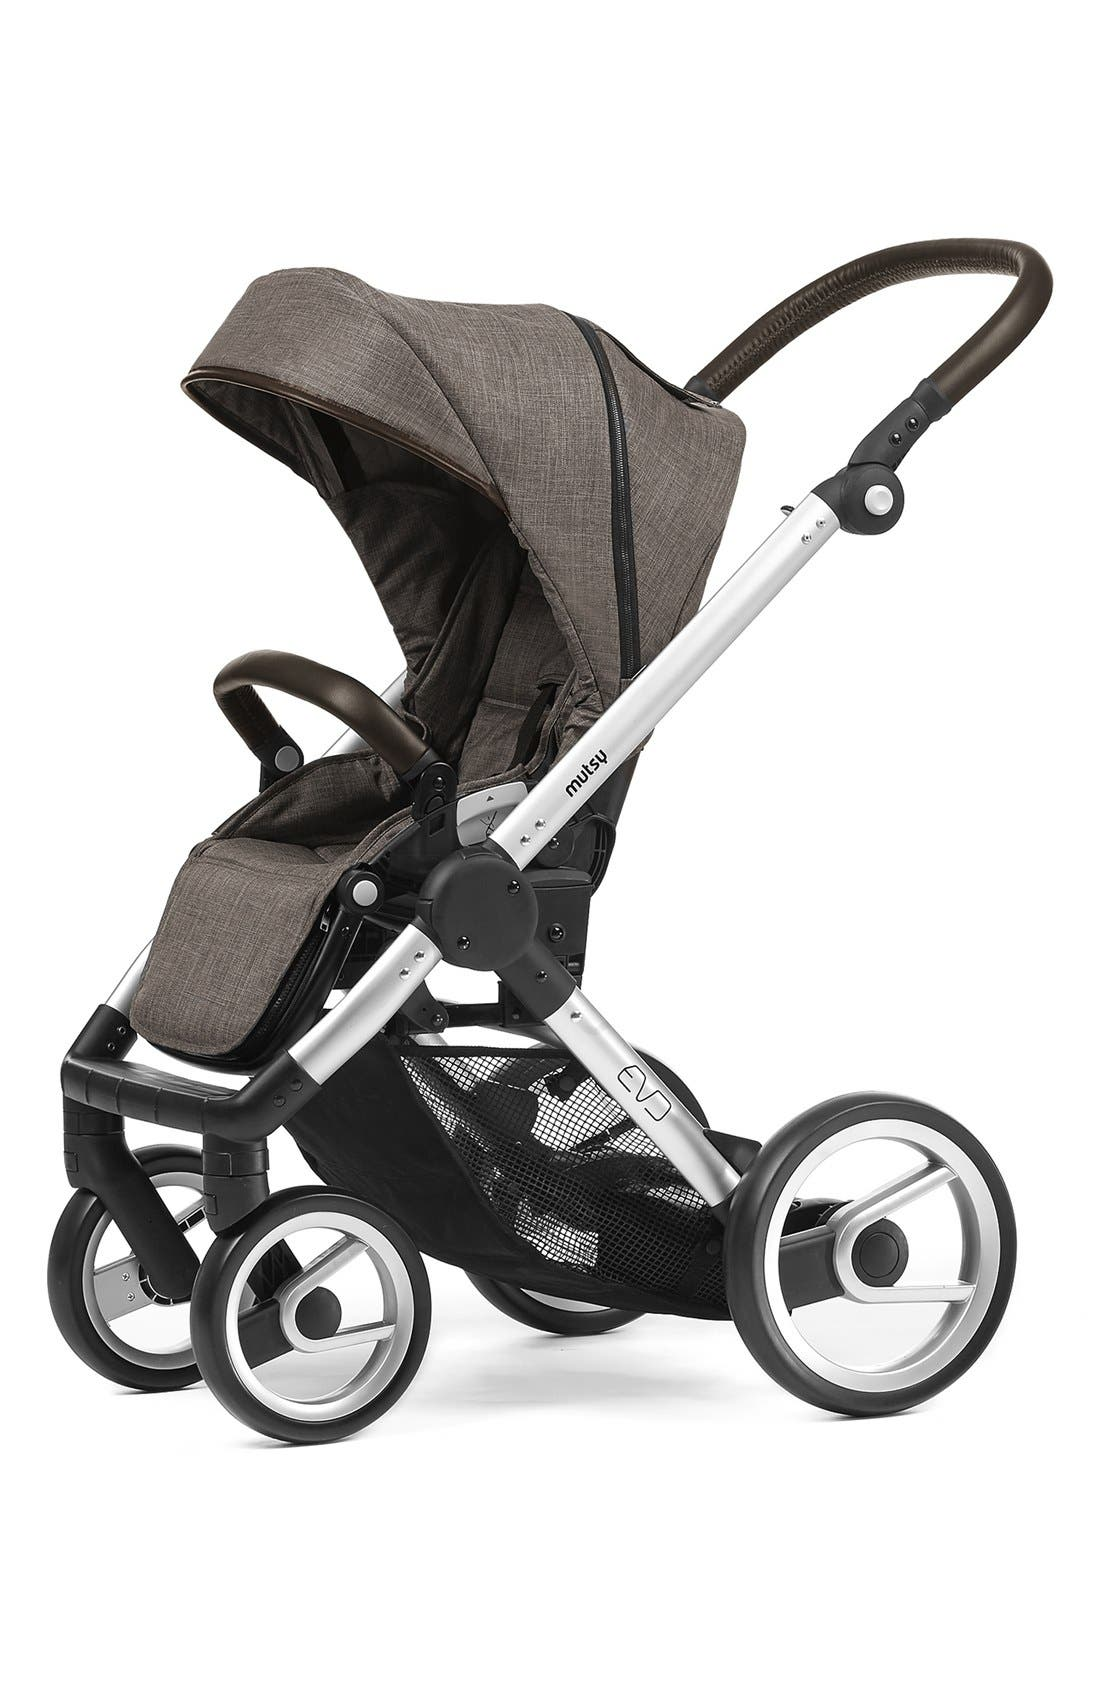 Evo - Farmer Earth Stroller,                             Main thumbnail 1, color,                             211